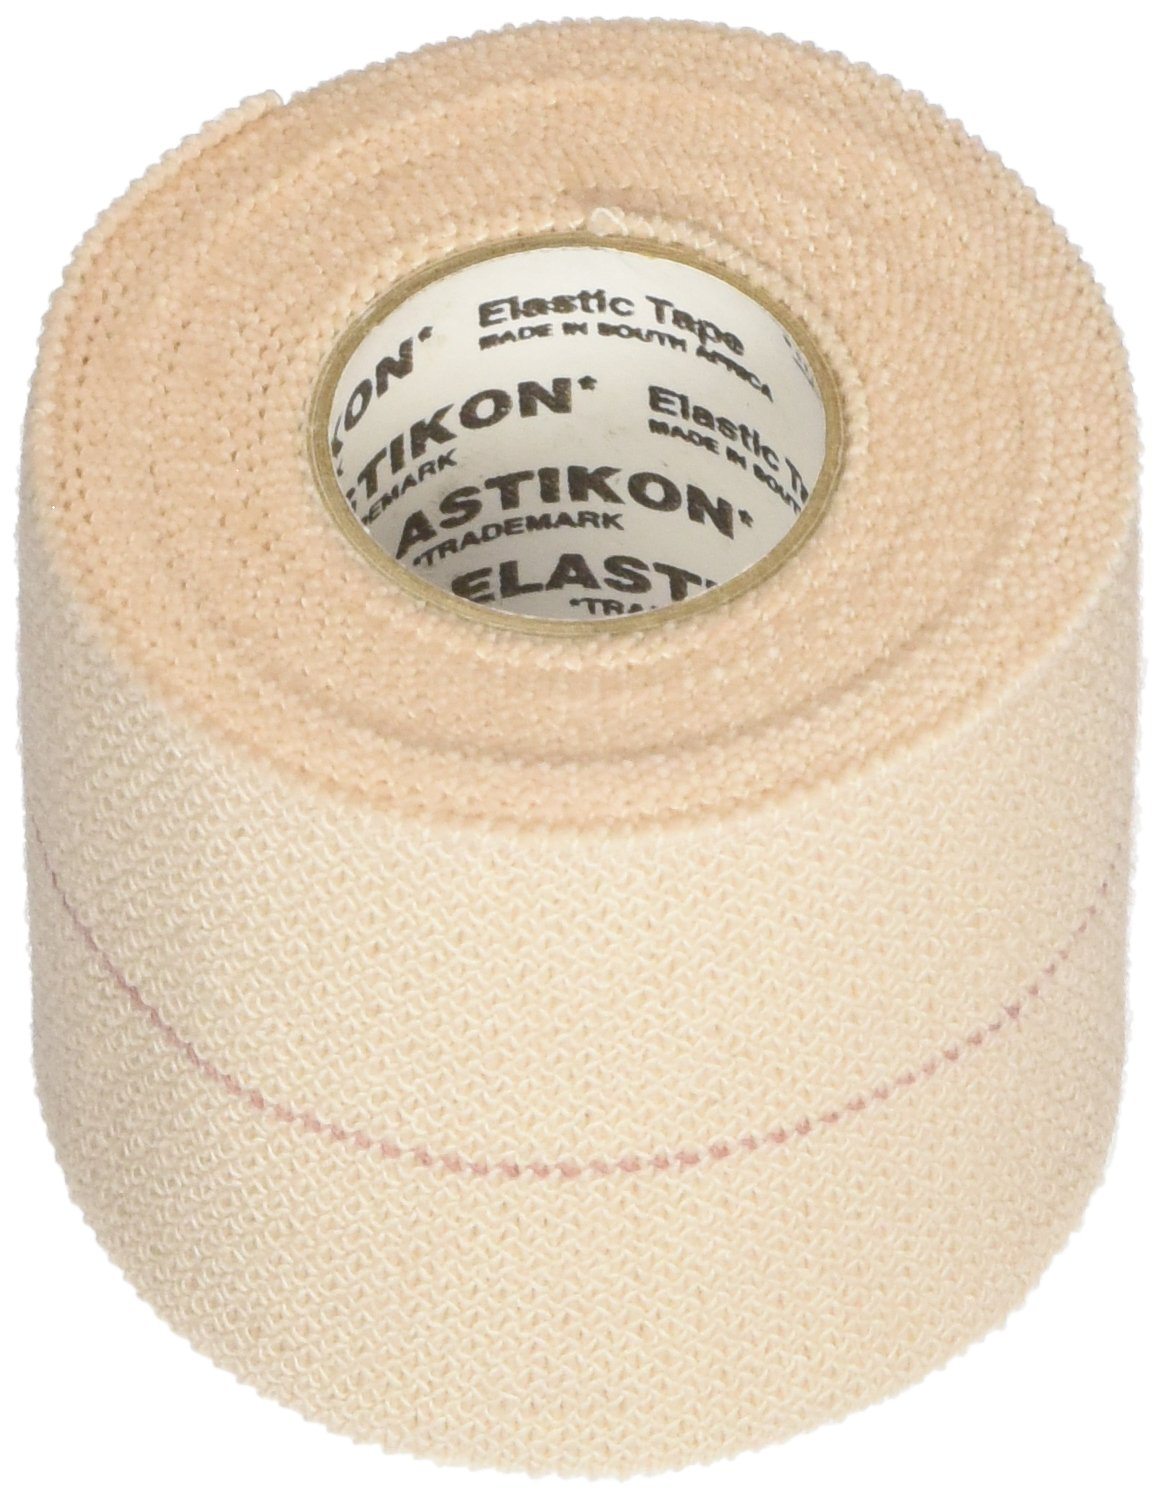 J&J HEALTHCARE  First Aid Elastikon ElasticTape - 2 Inches X 2.5 yards - 6 rolls by J&J HEALTHCARE.